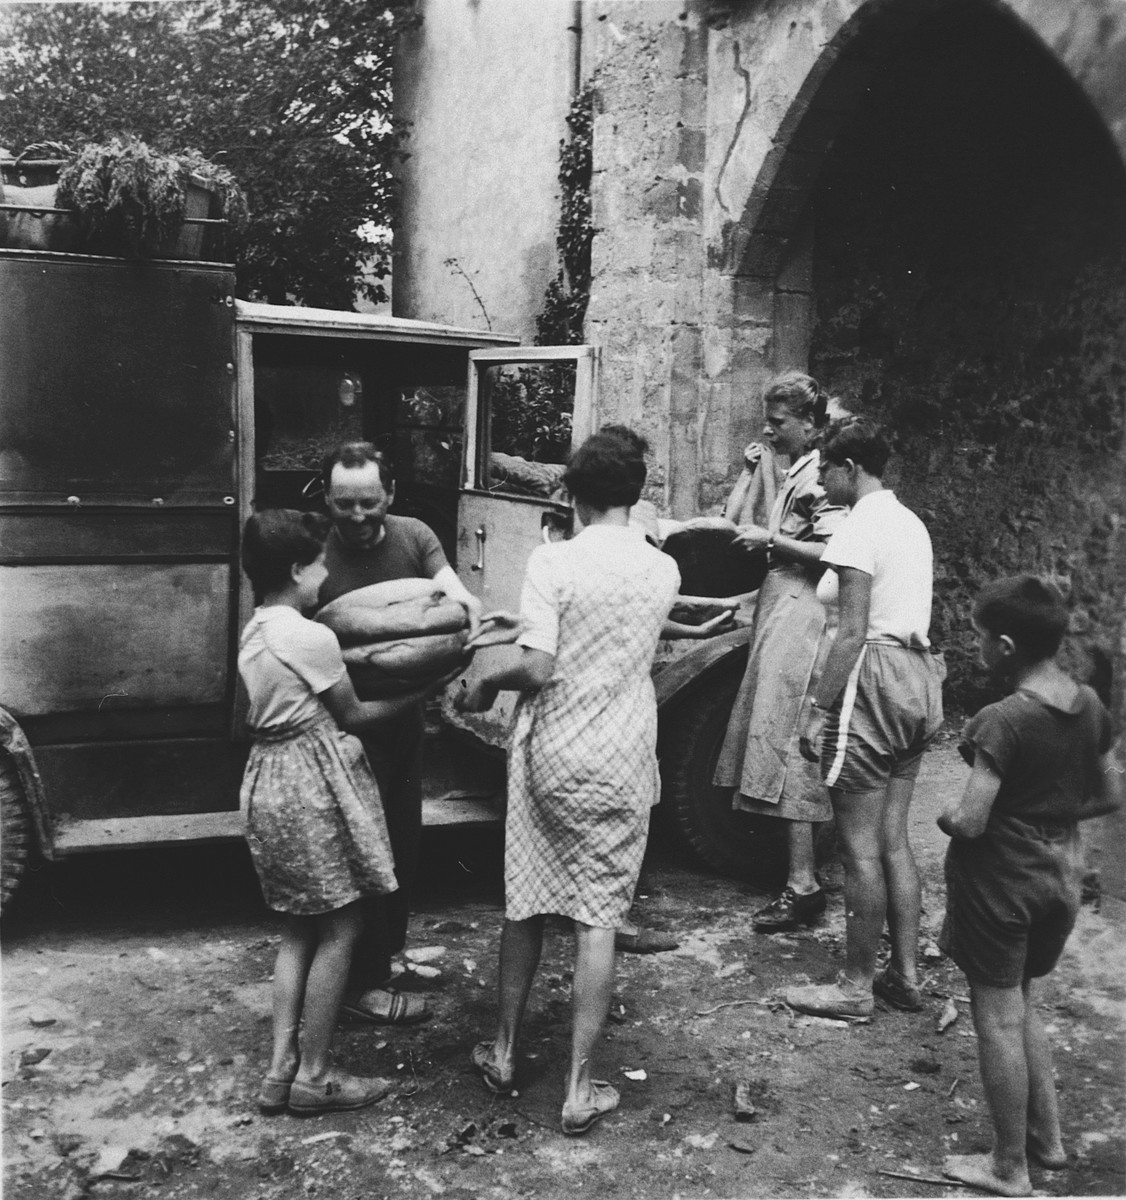 Children help unload bread being delivered to the Chateau La Hille.  Edith Goldapper (later Rosenthal) is pictured at the far right.  Roesli Naef is pictured third from the right (with a wrist watch on her left arm).  Gerhard Eckmann may also be pictured.